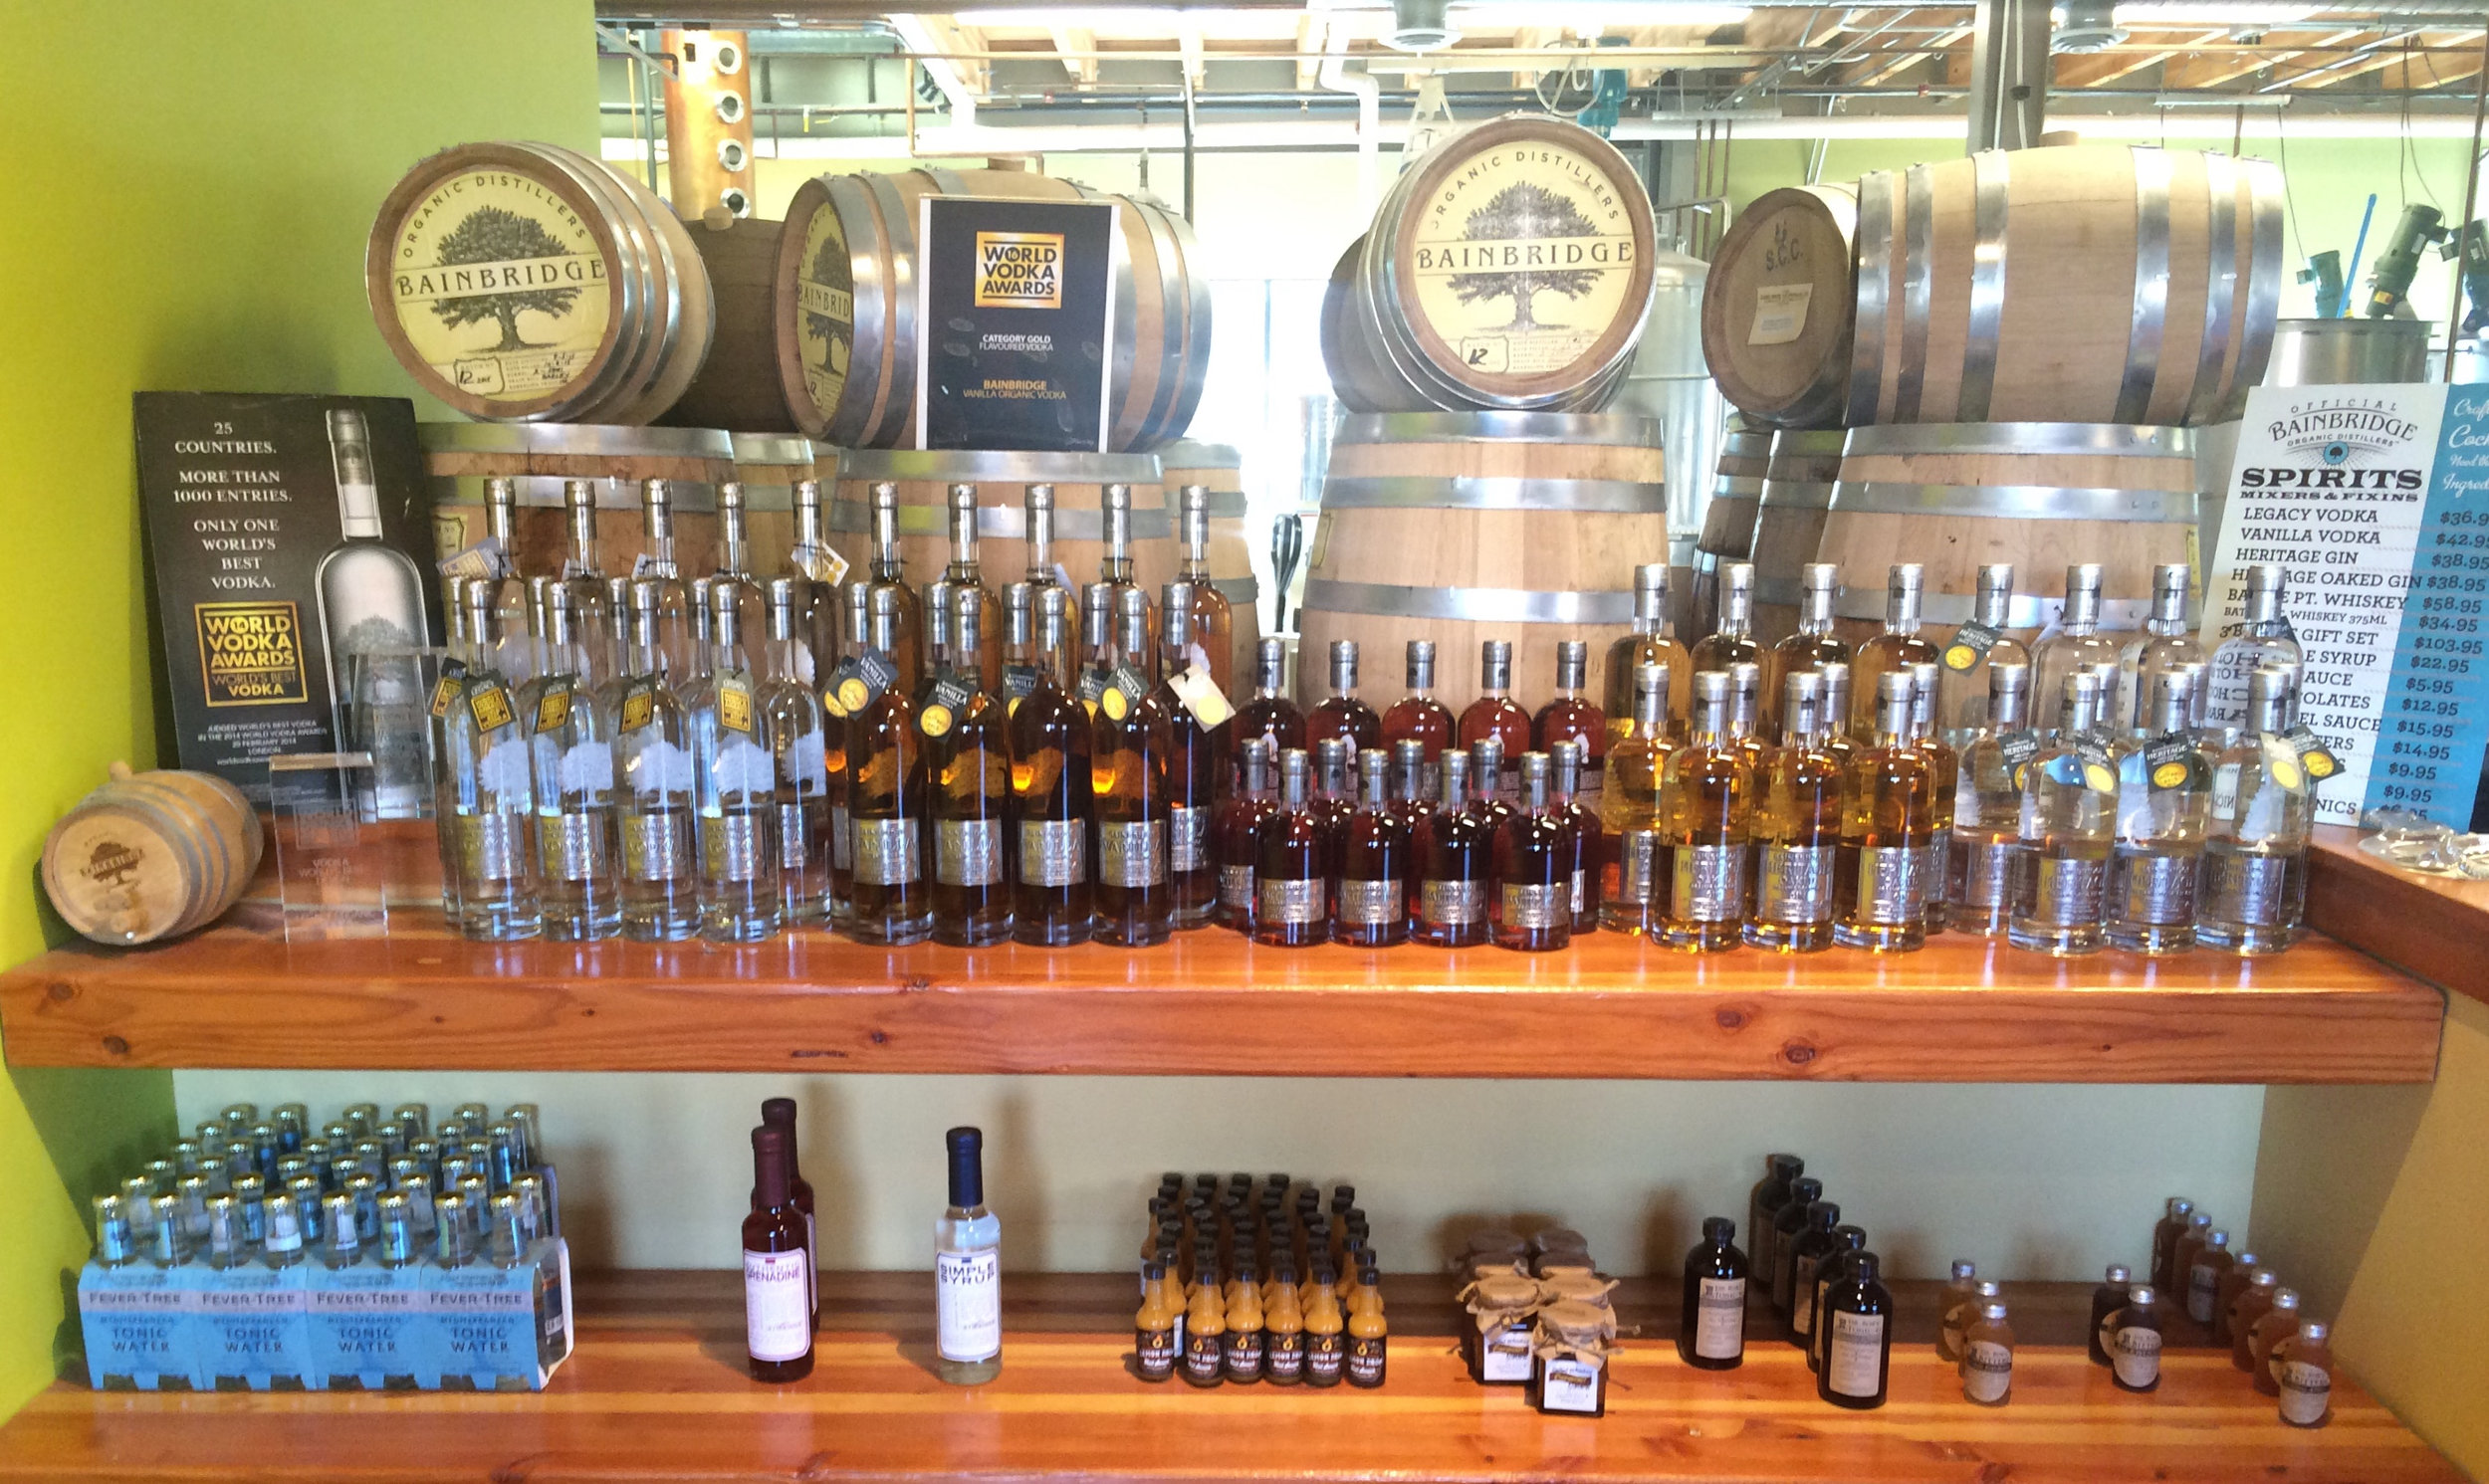 A full selection of the spirits available at the distillery.